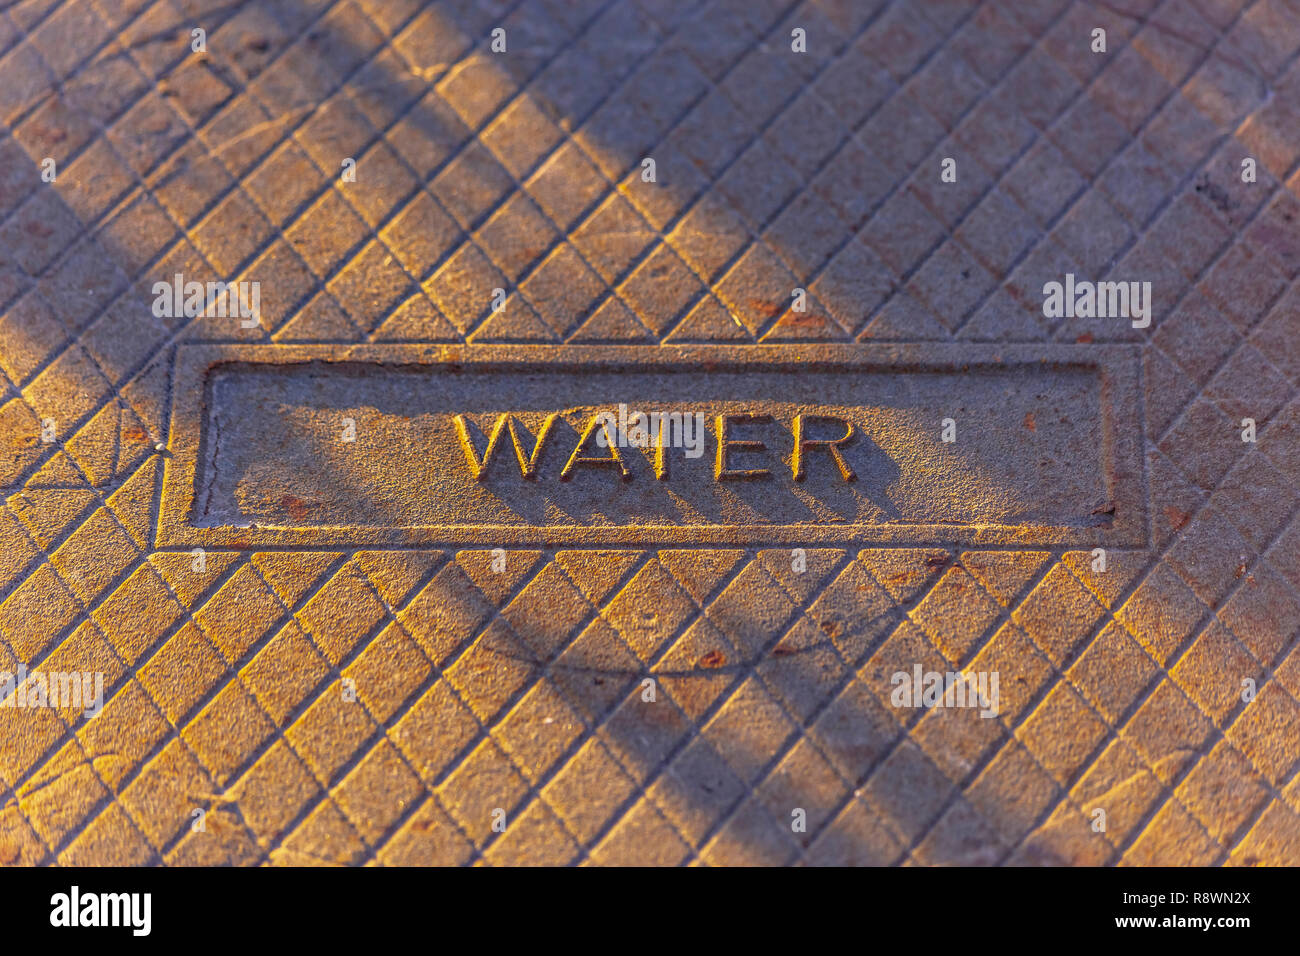 Water stamped on a man hole cover - Stock Image